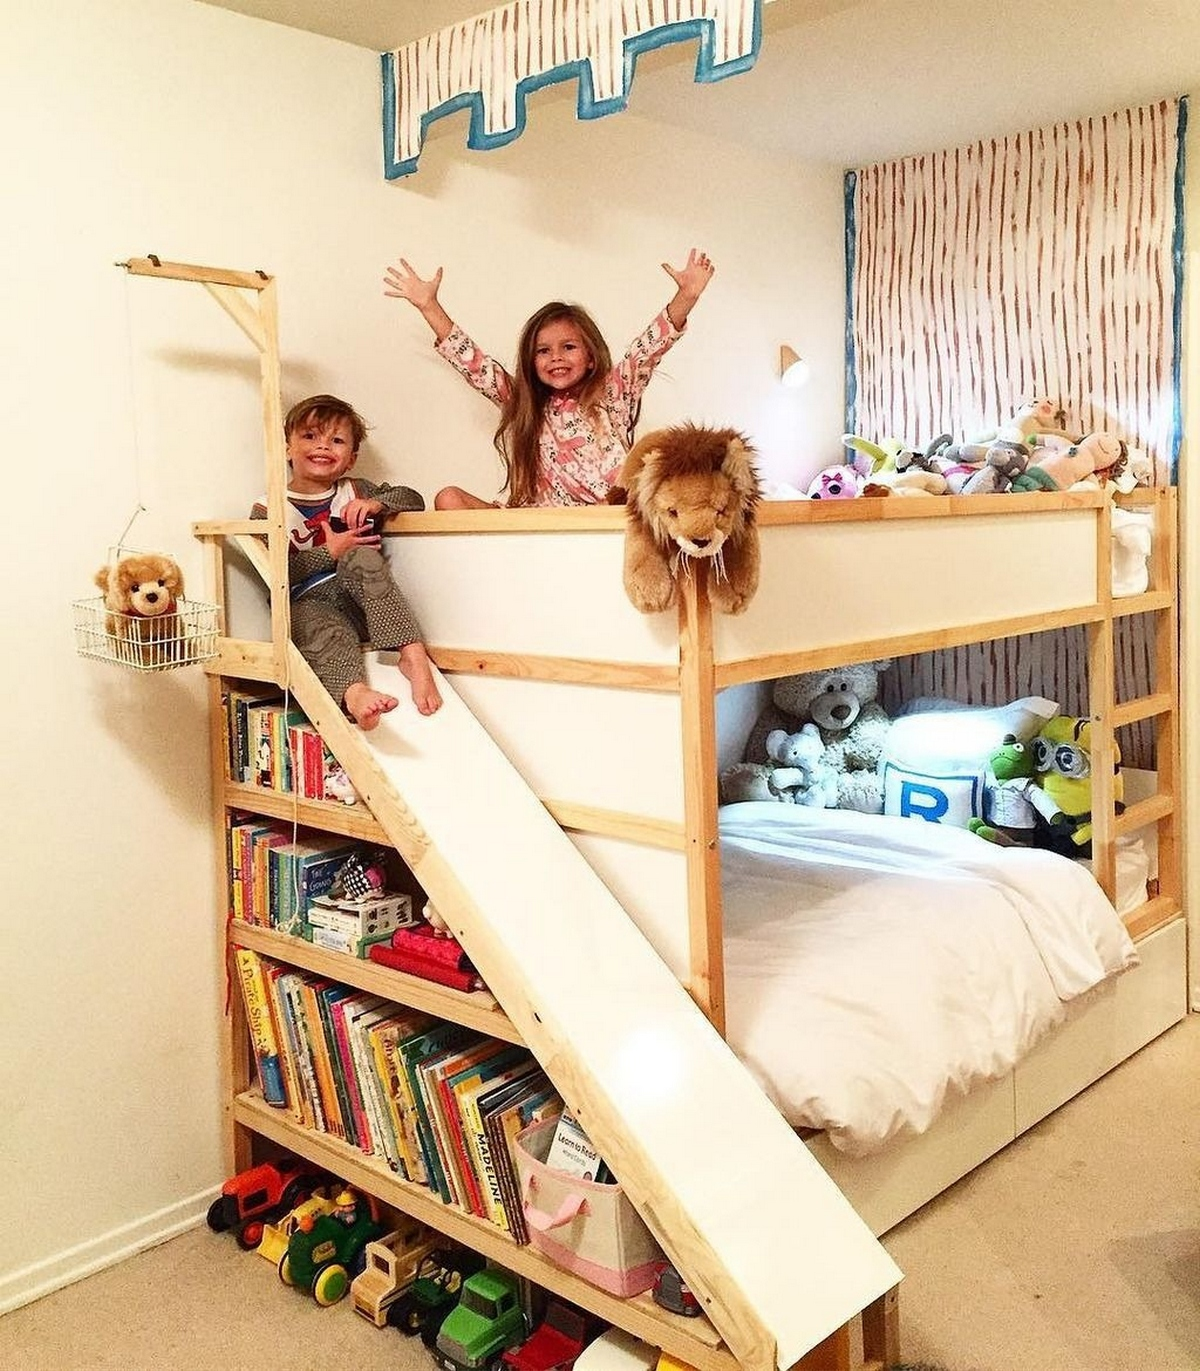 31 Most Popular Kids Bunk Beds Design Ideas Make Sleeping Fun For Your Kids 8